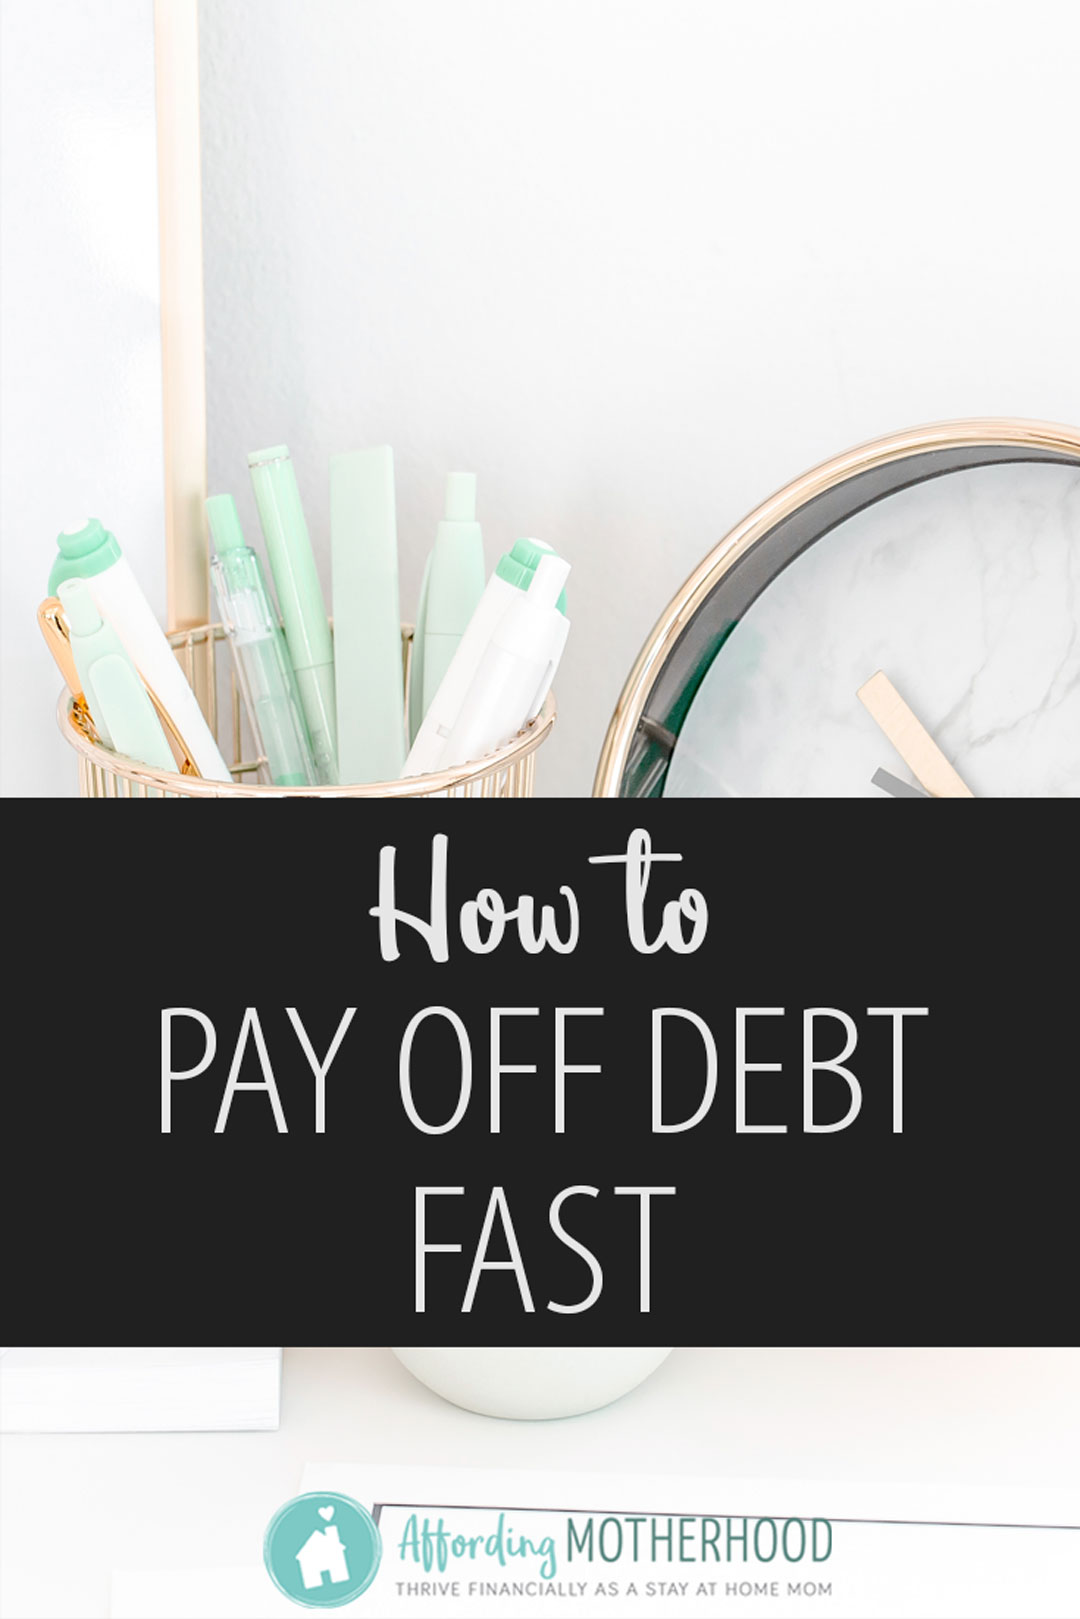 What is debt reduction?